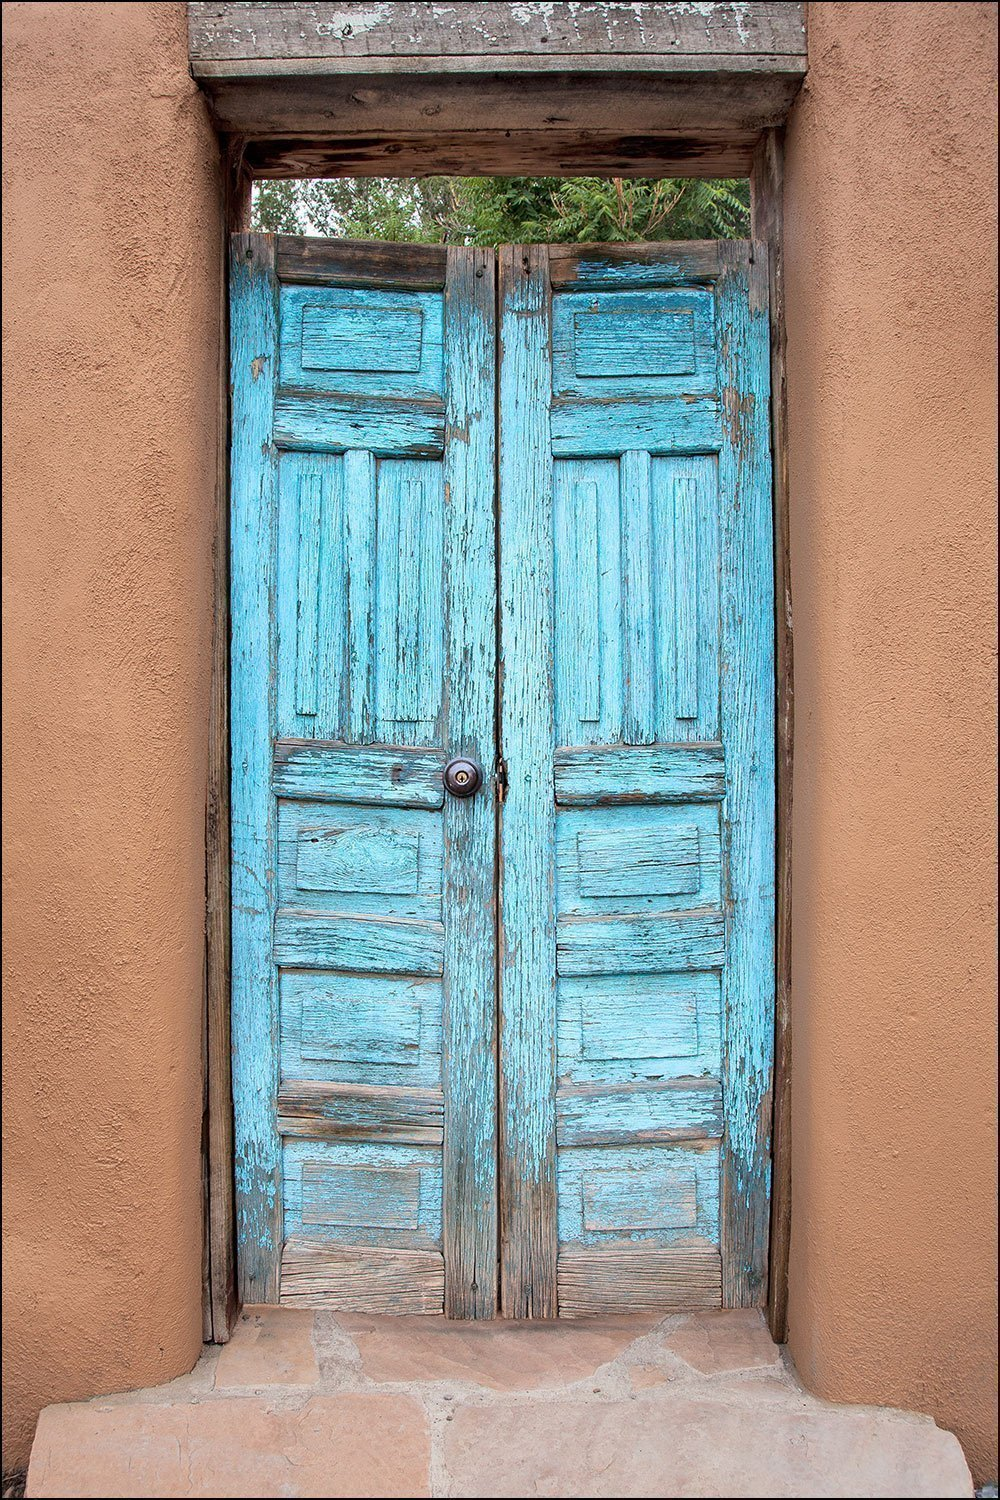 Amazon Com Photograph Of Colorful Blue American Southwest Architectural Wood Door Large Wall Art Decor Door Photography To Decorate Your Living Room Bedroom Kitchen Dining Room Hallway Or Office Handmade